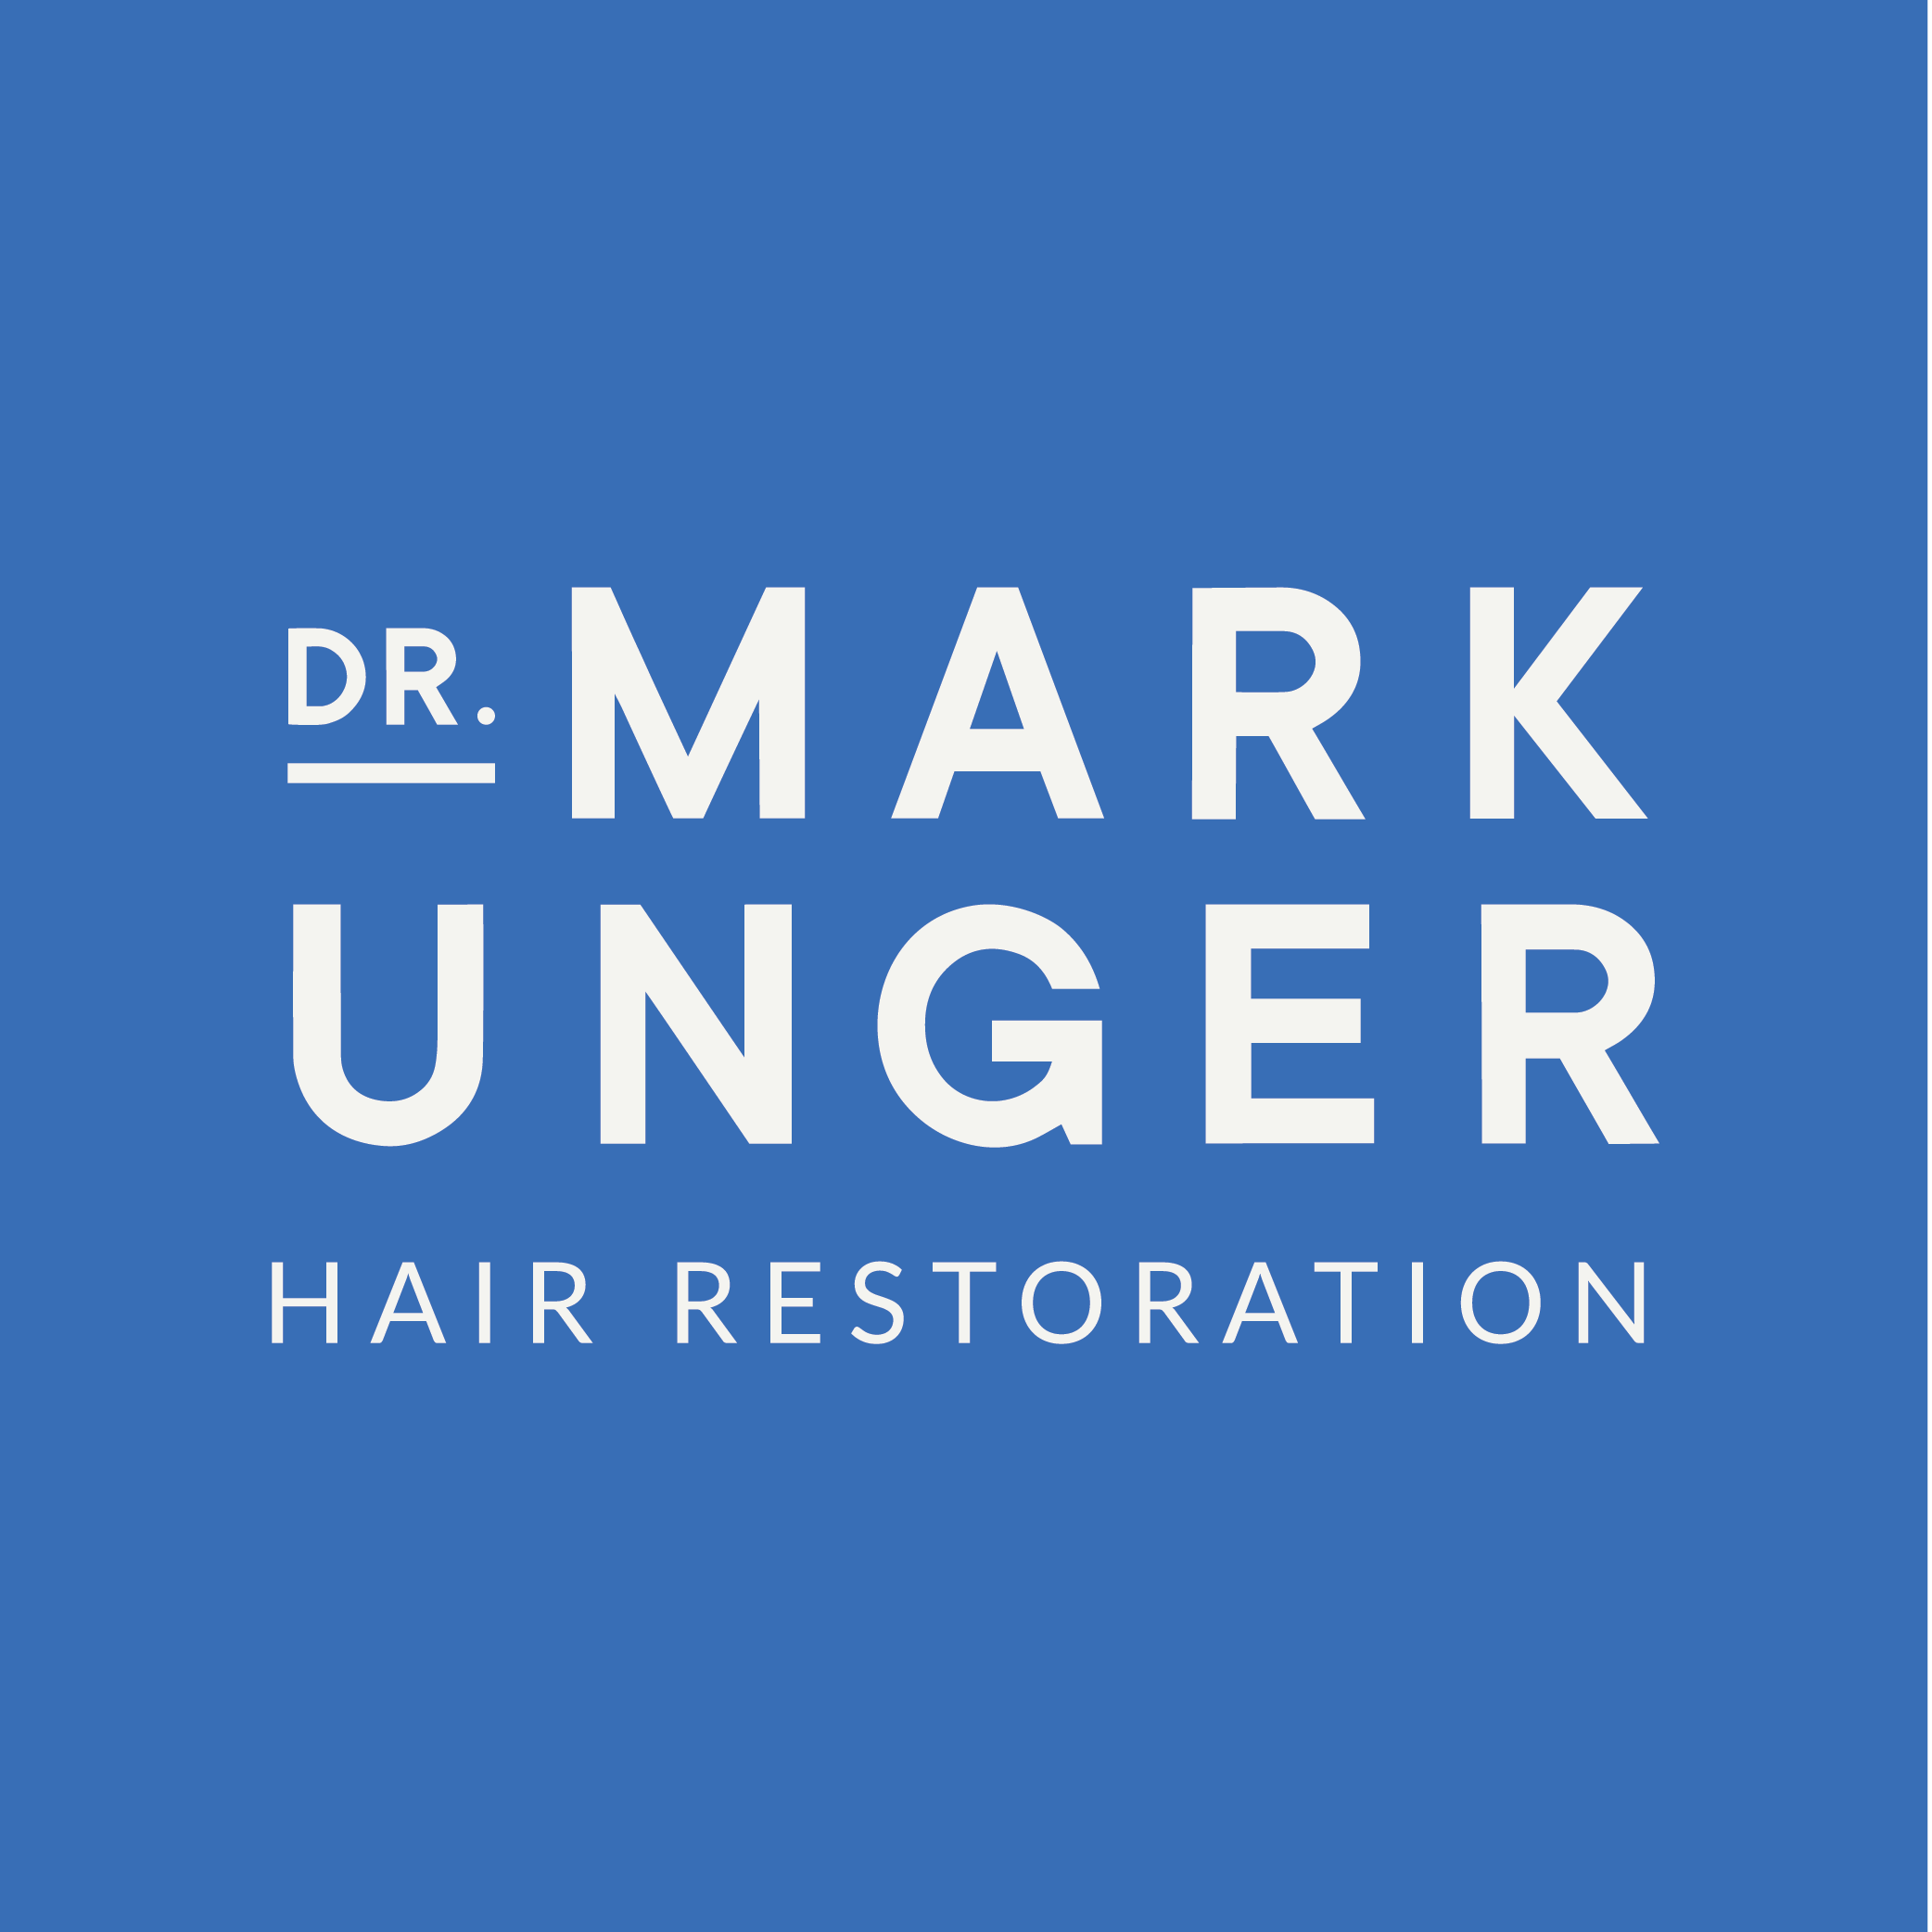 hair restoration brand design by Function Creative Co.